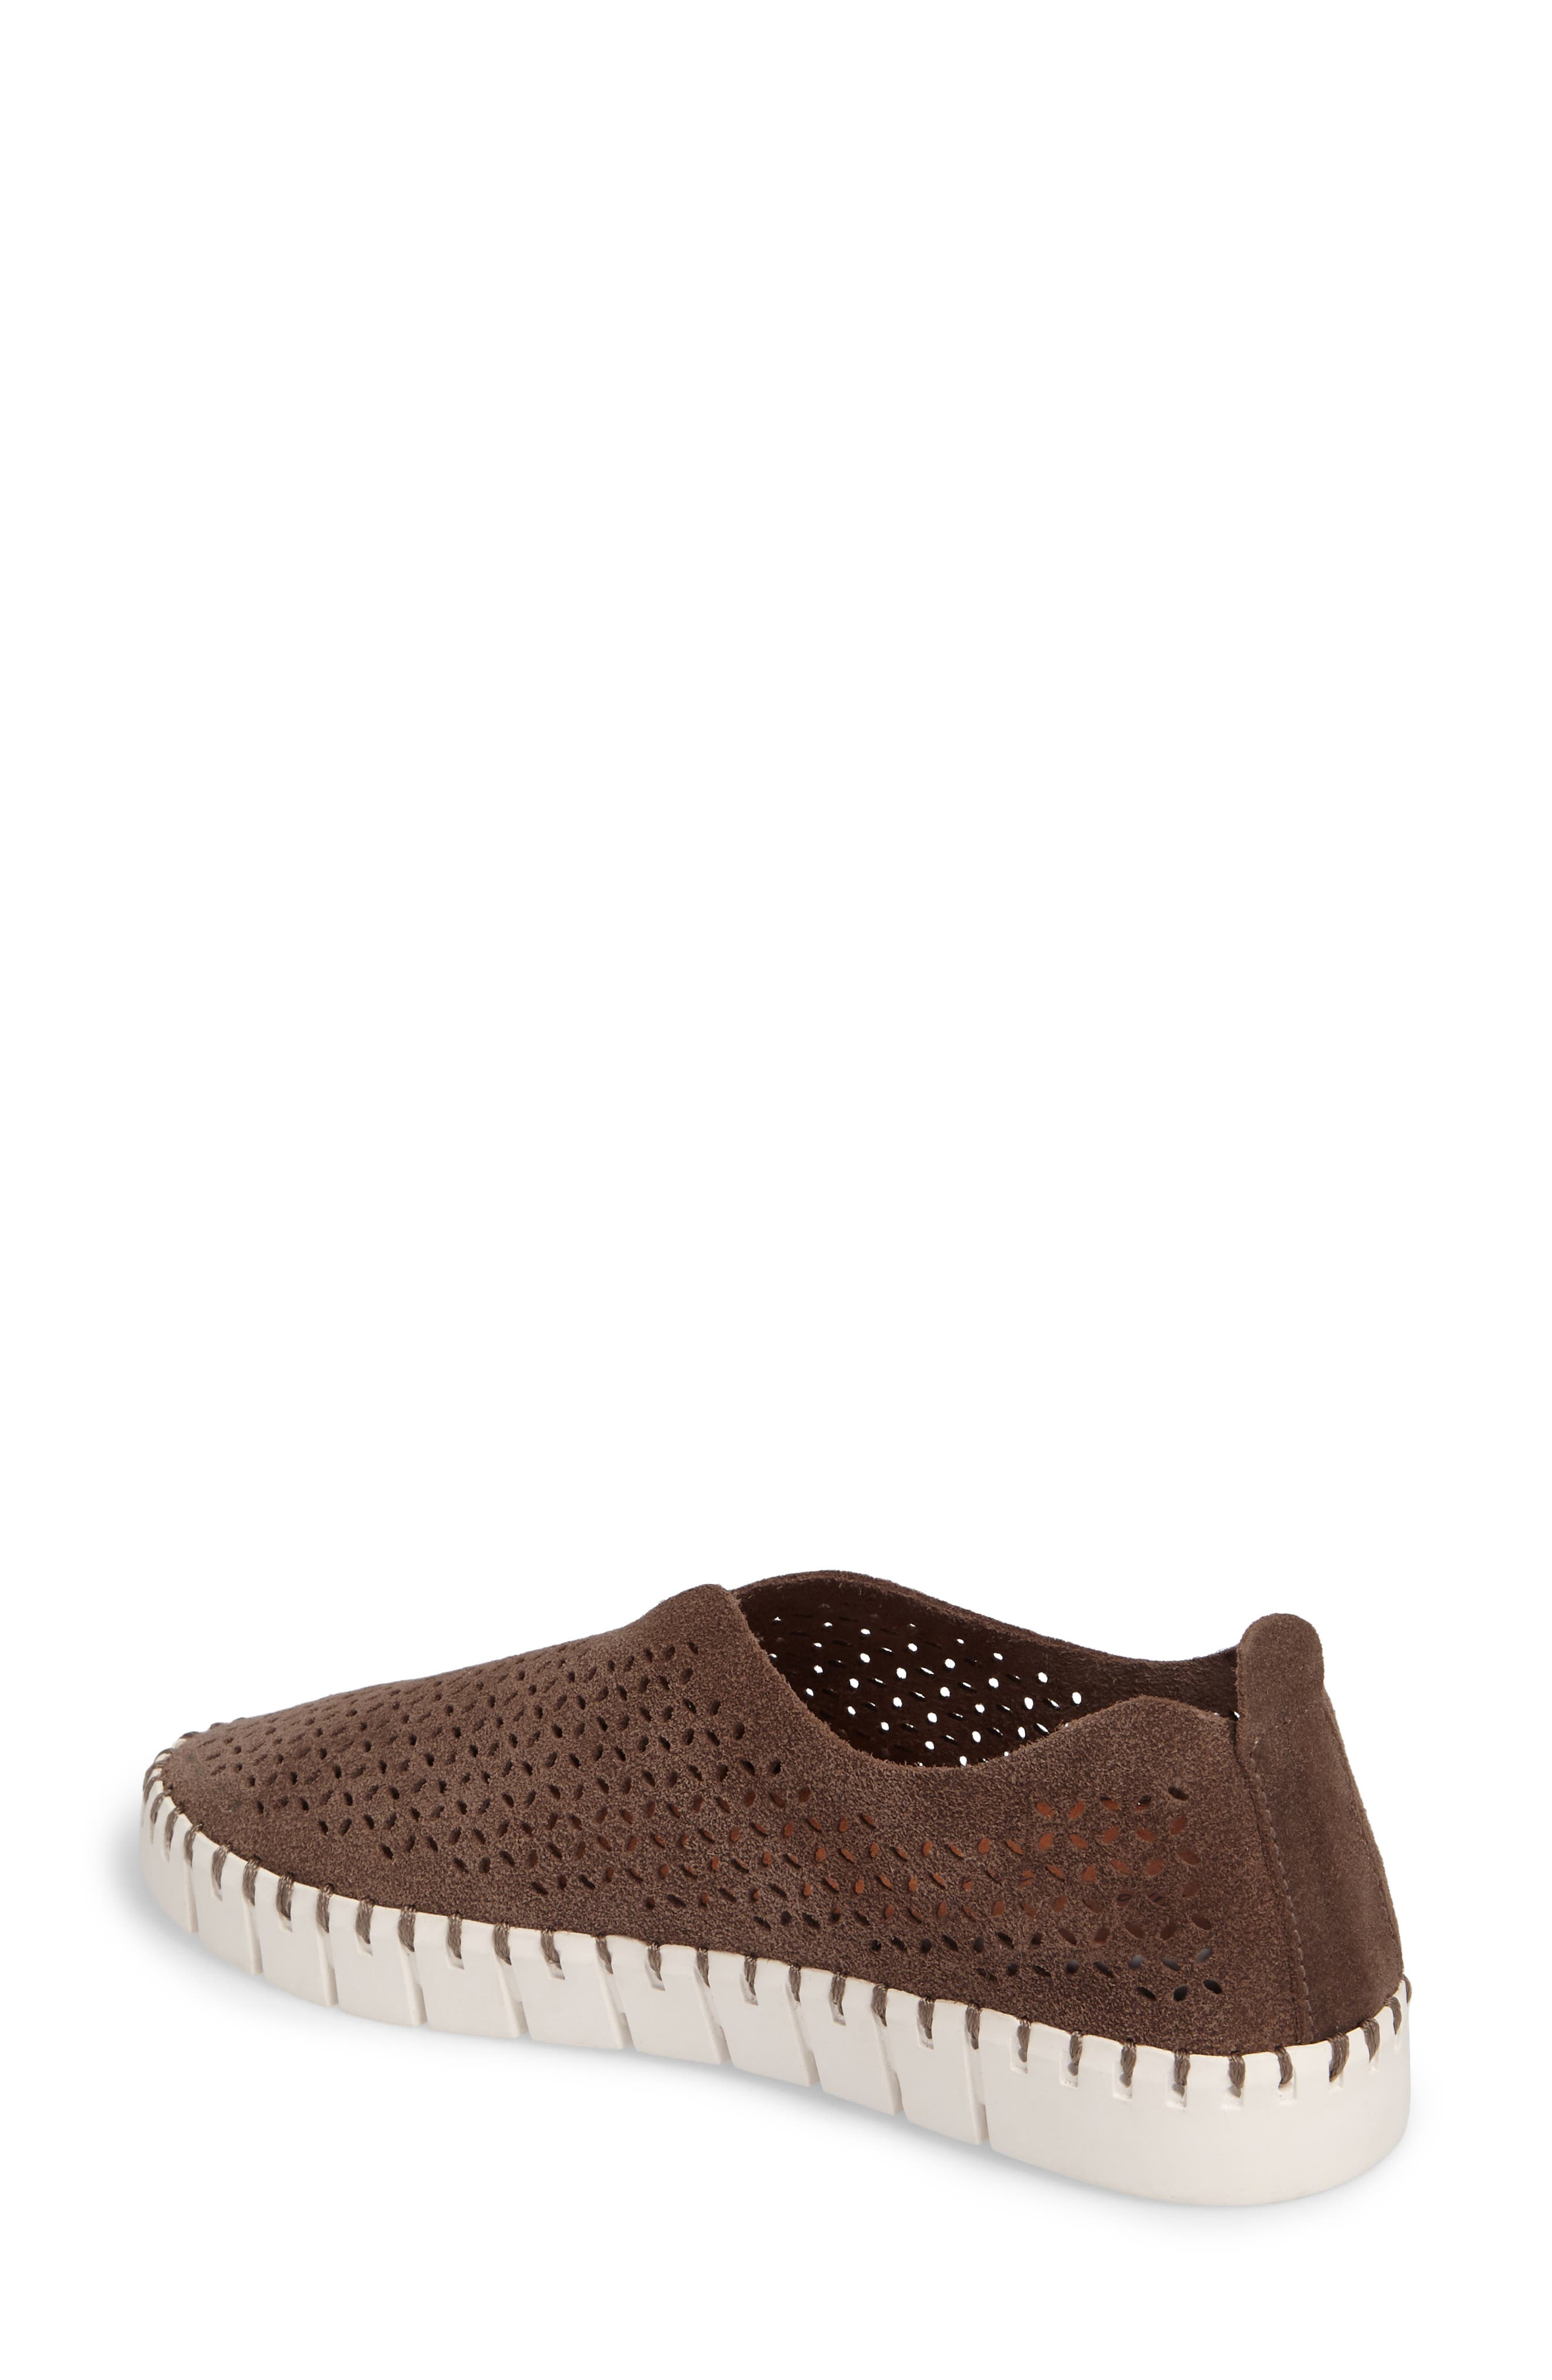 Alternate Image 2  - Jeffrey Campbell Tiles Perforated Slip-On Sneaker (Women)